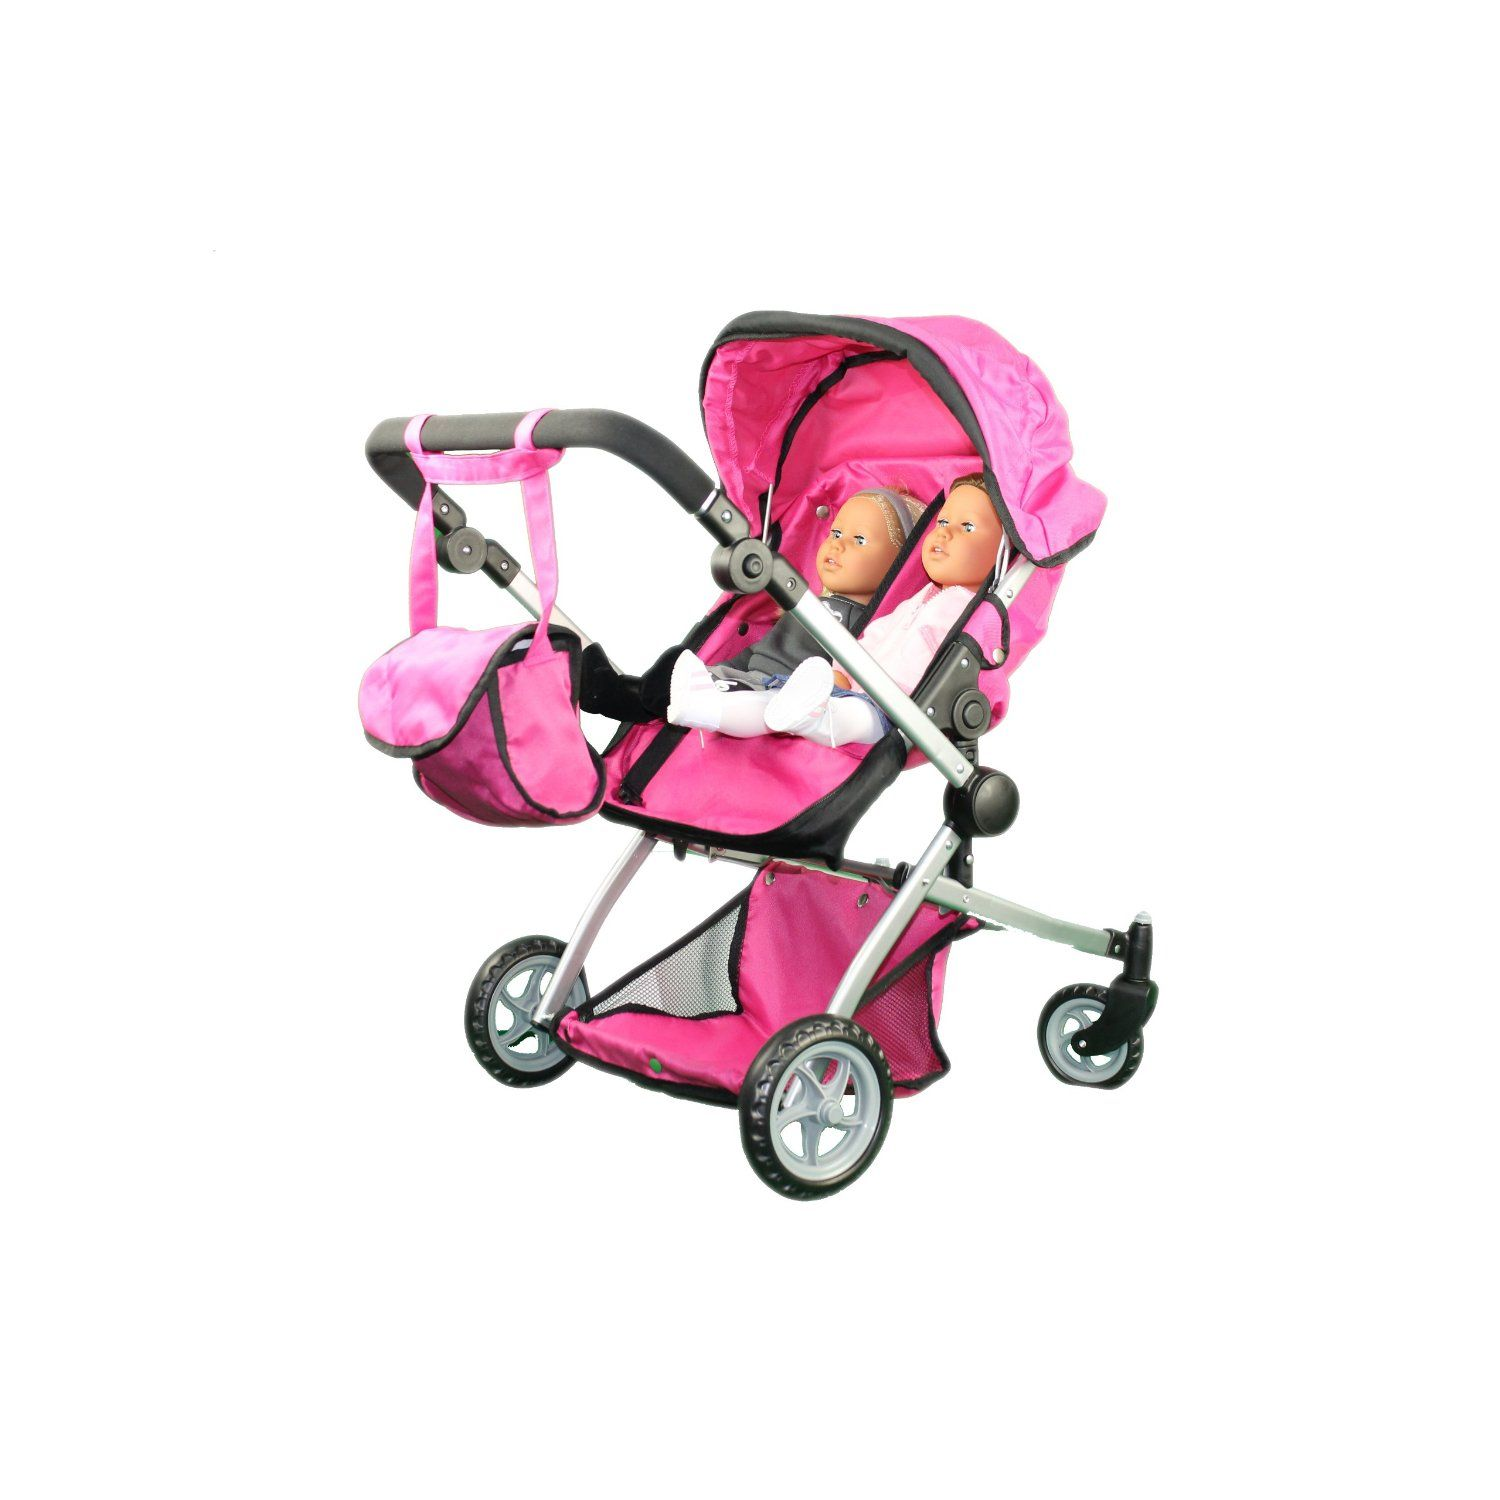 Baby Prams Target Doll Strollers Toys From My Childhood Pinterest